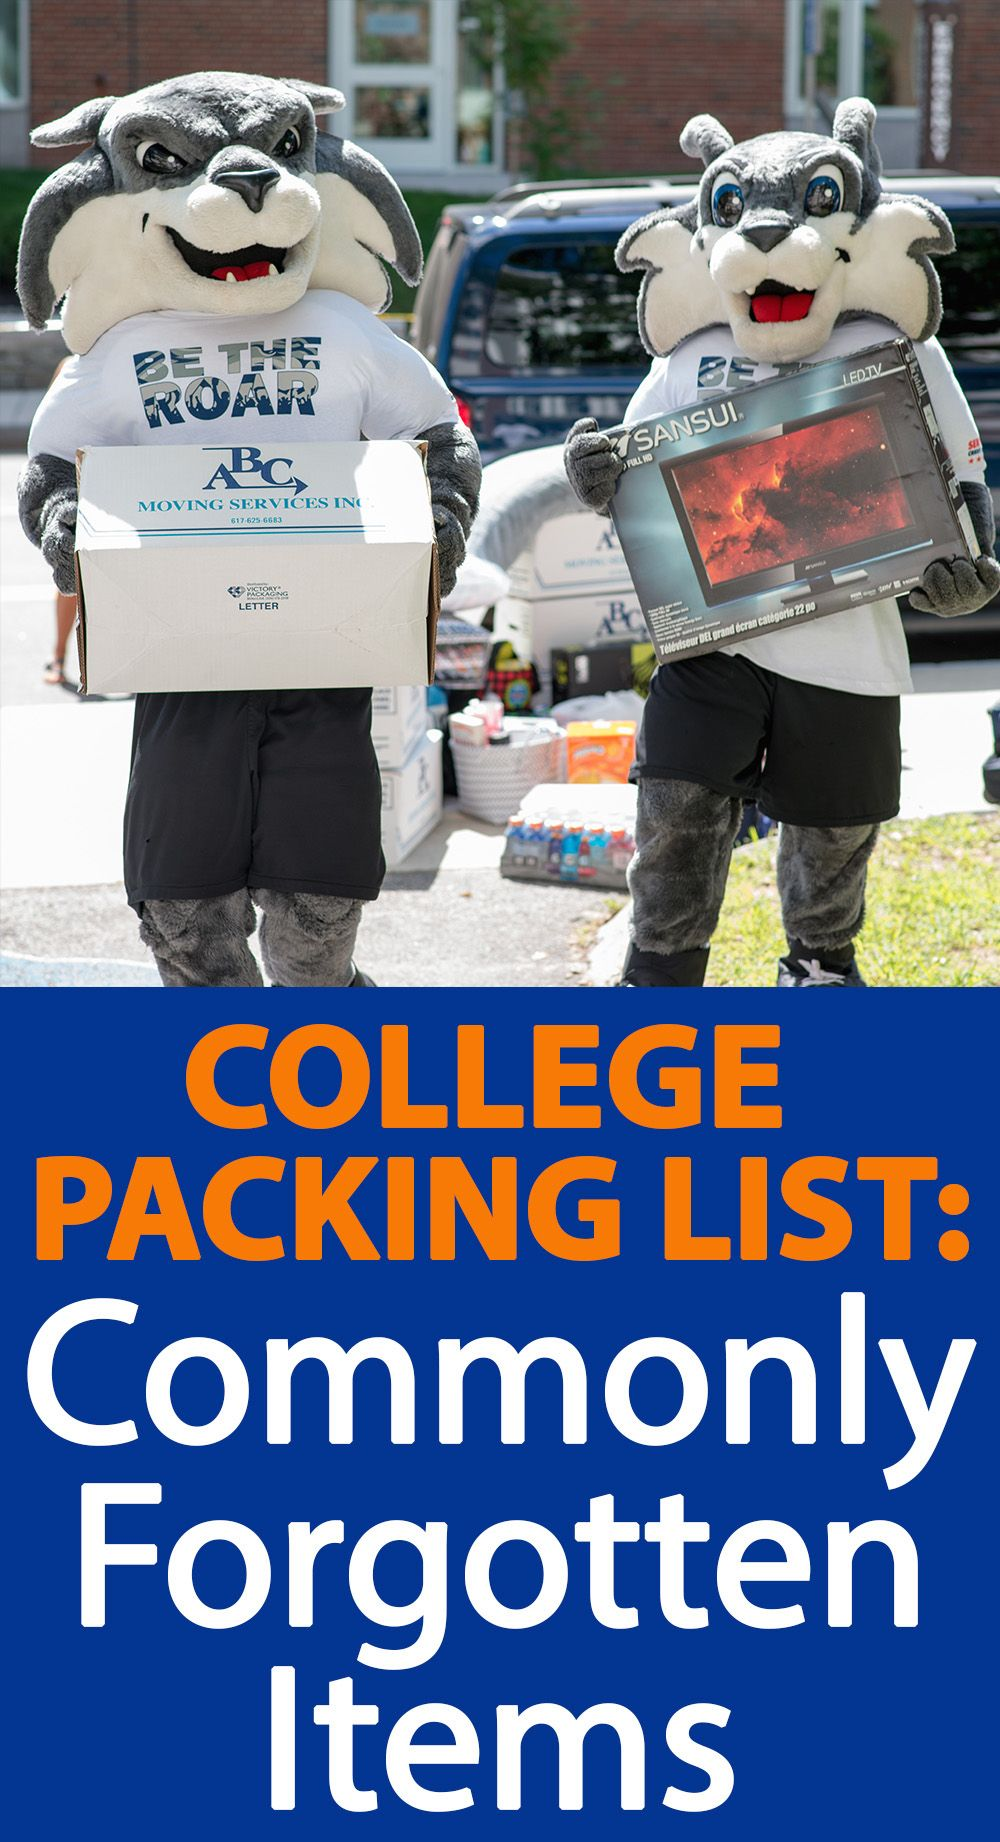 College Packing List: Commonly Forgotten Items #collegepackinglist